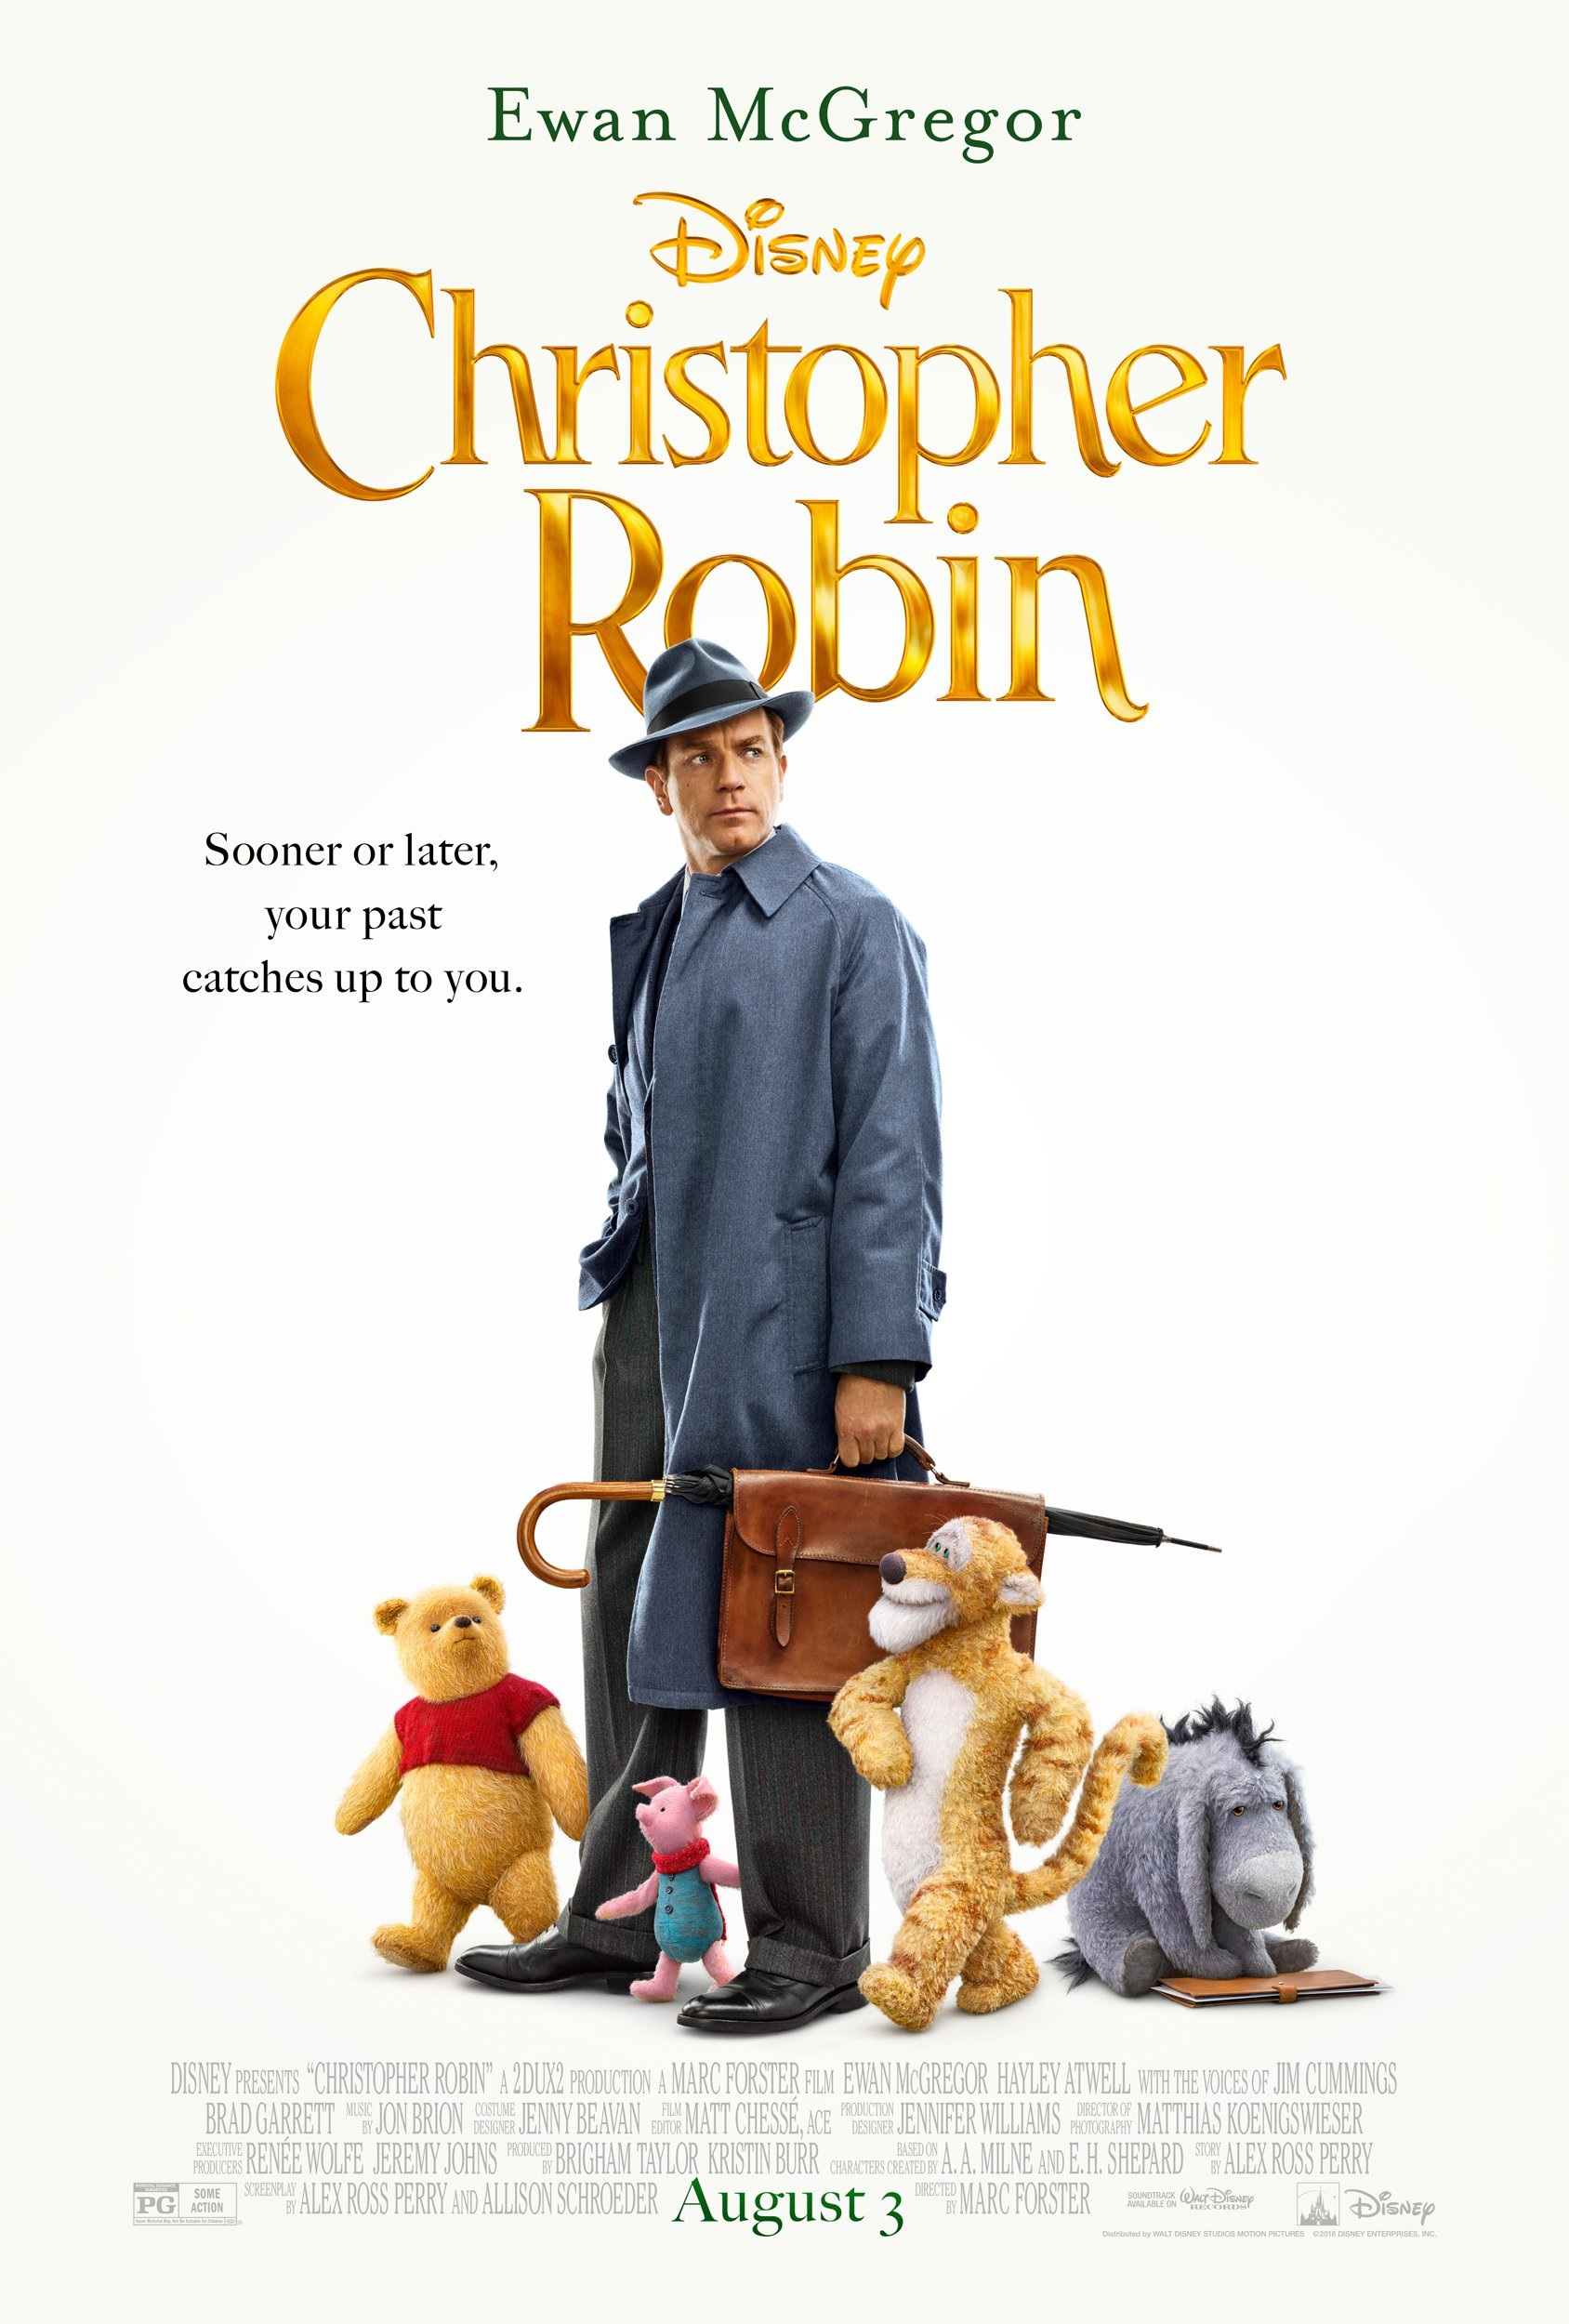 Star Wars Last Jedi Wiki >> Christopher Robin | Disney Wiki | FANDOM powered by Wikia